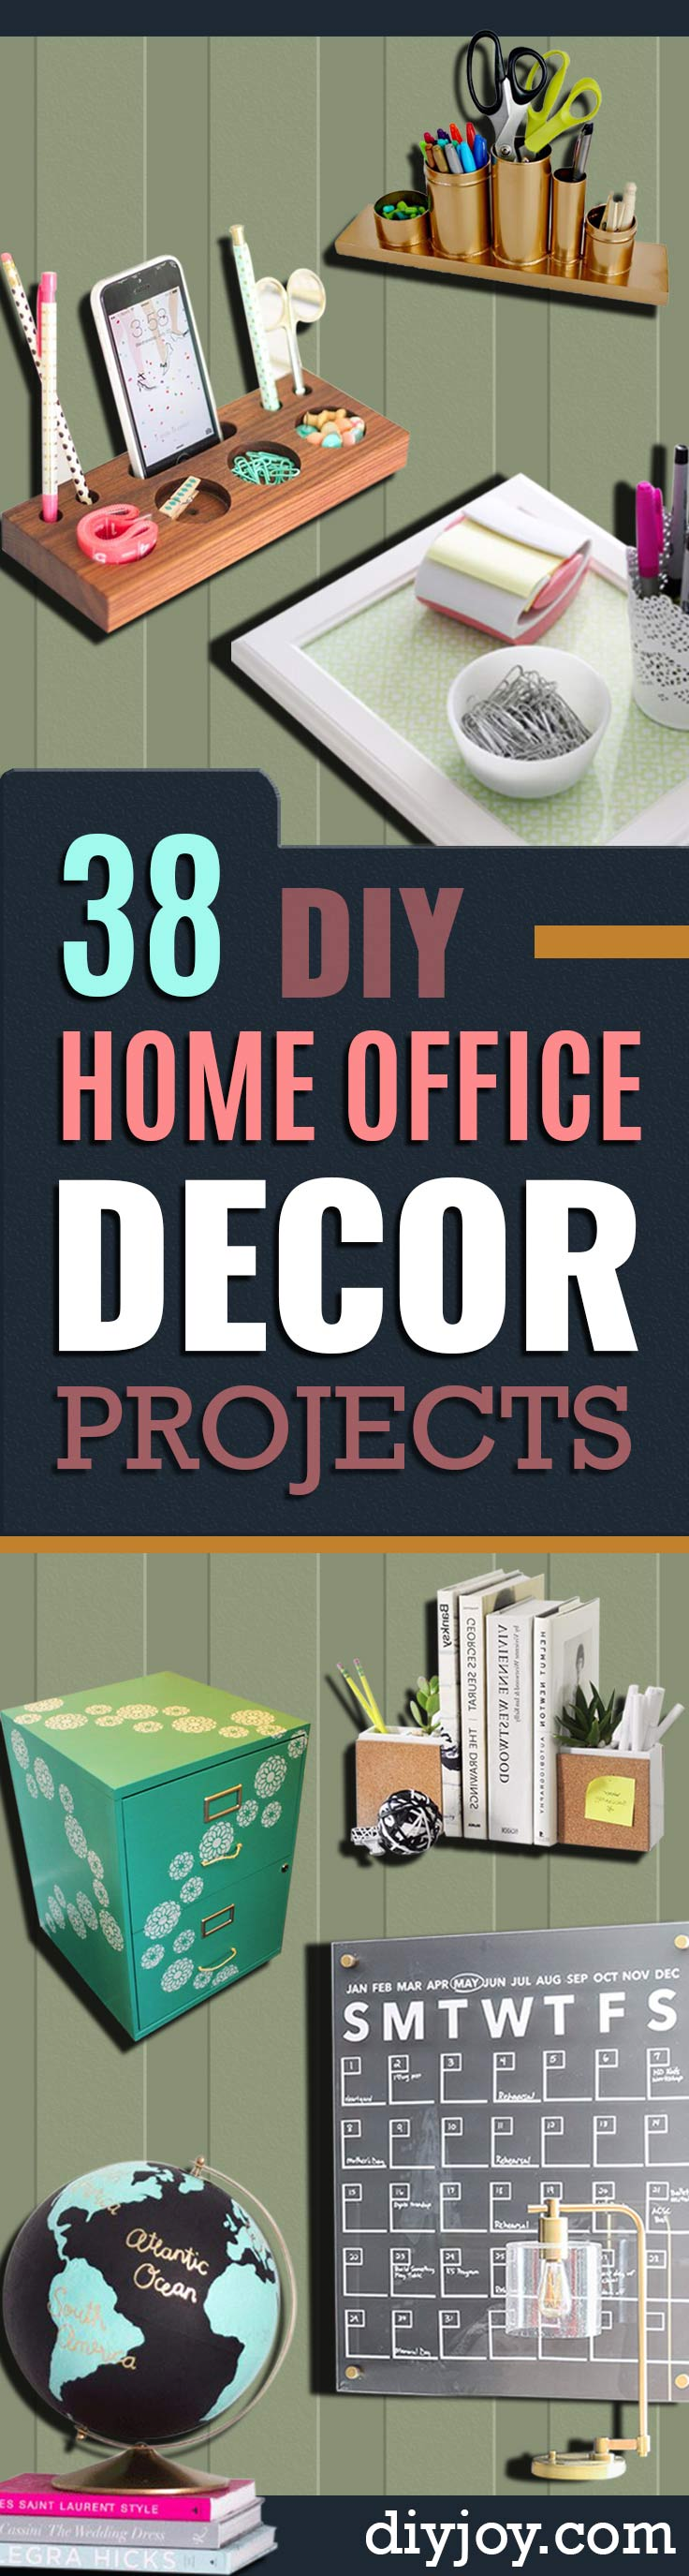 DIY Home Office Decor Ideas - Do It Yourself Desks, Tables, Wall Art, Chairs, Rugs, Seating and Desk Accessories for Your Home Office #diydecor #office #diy